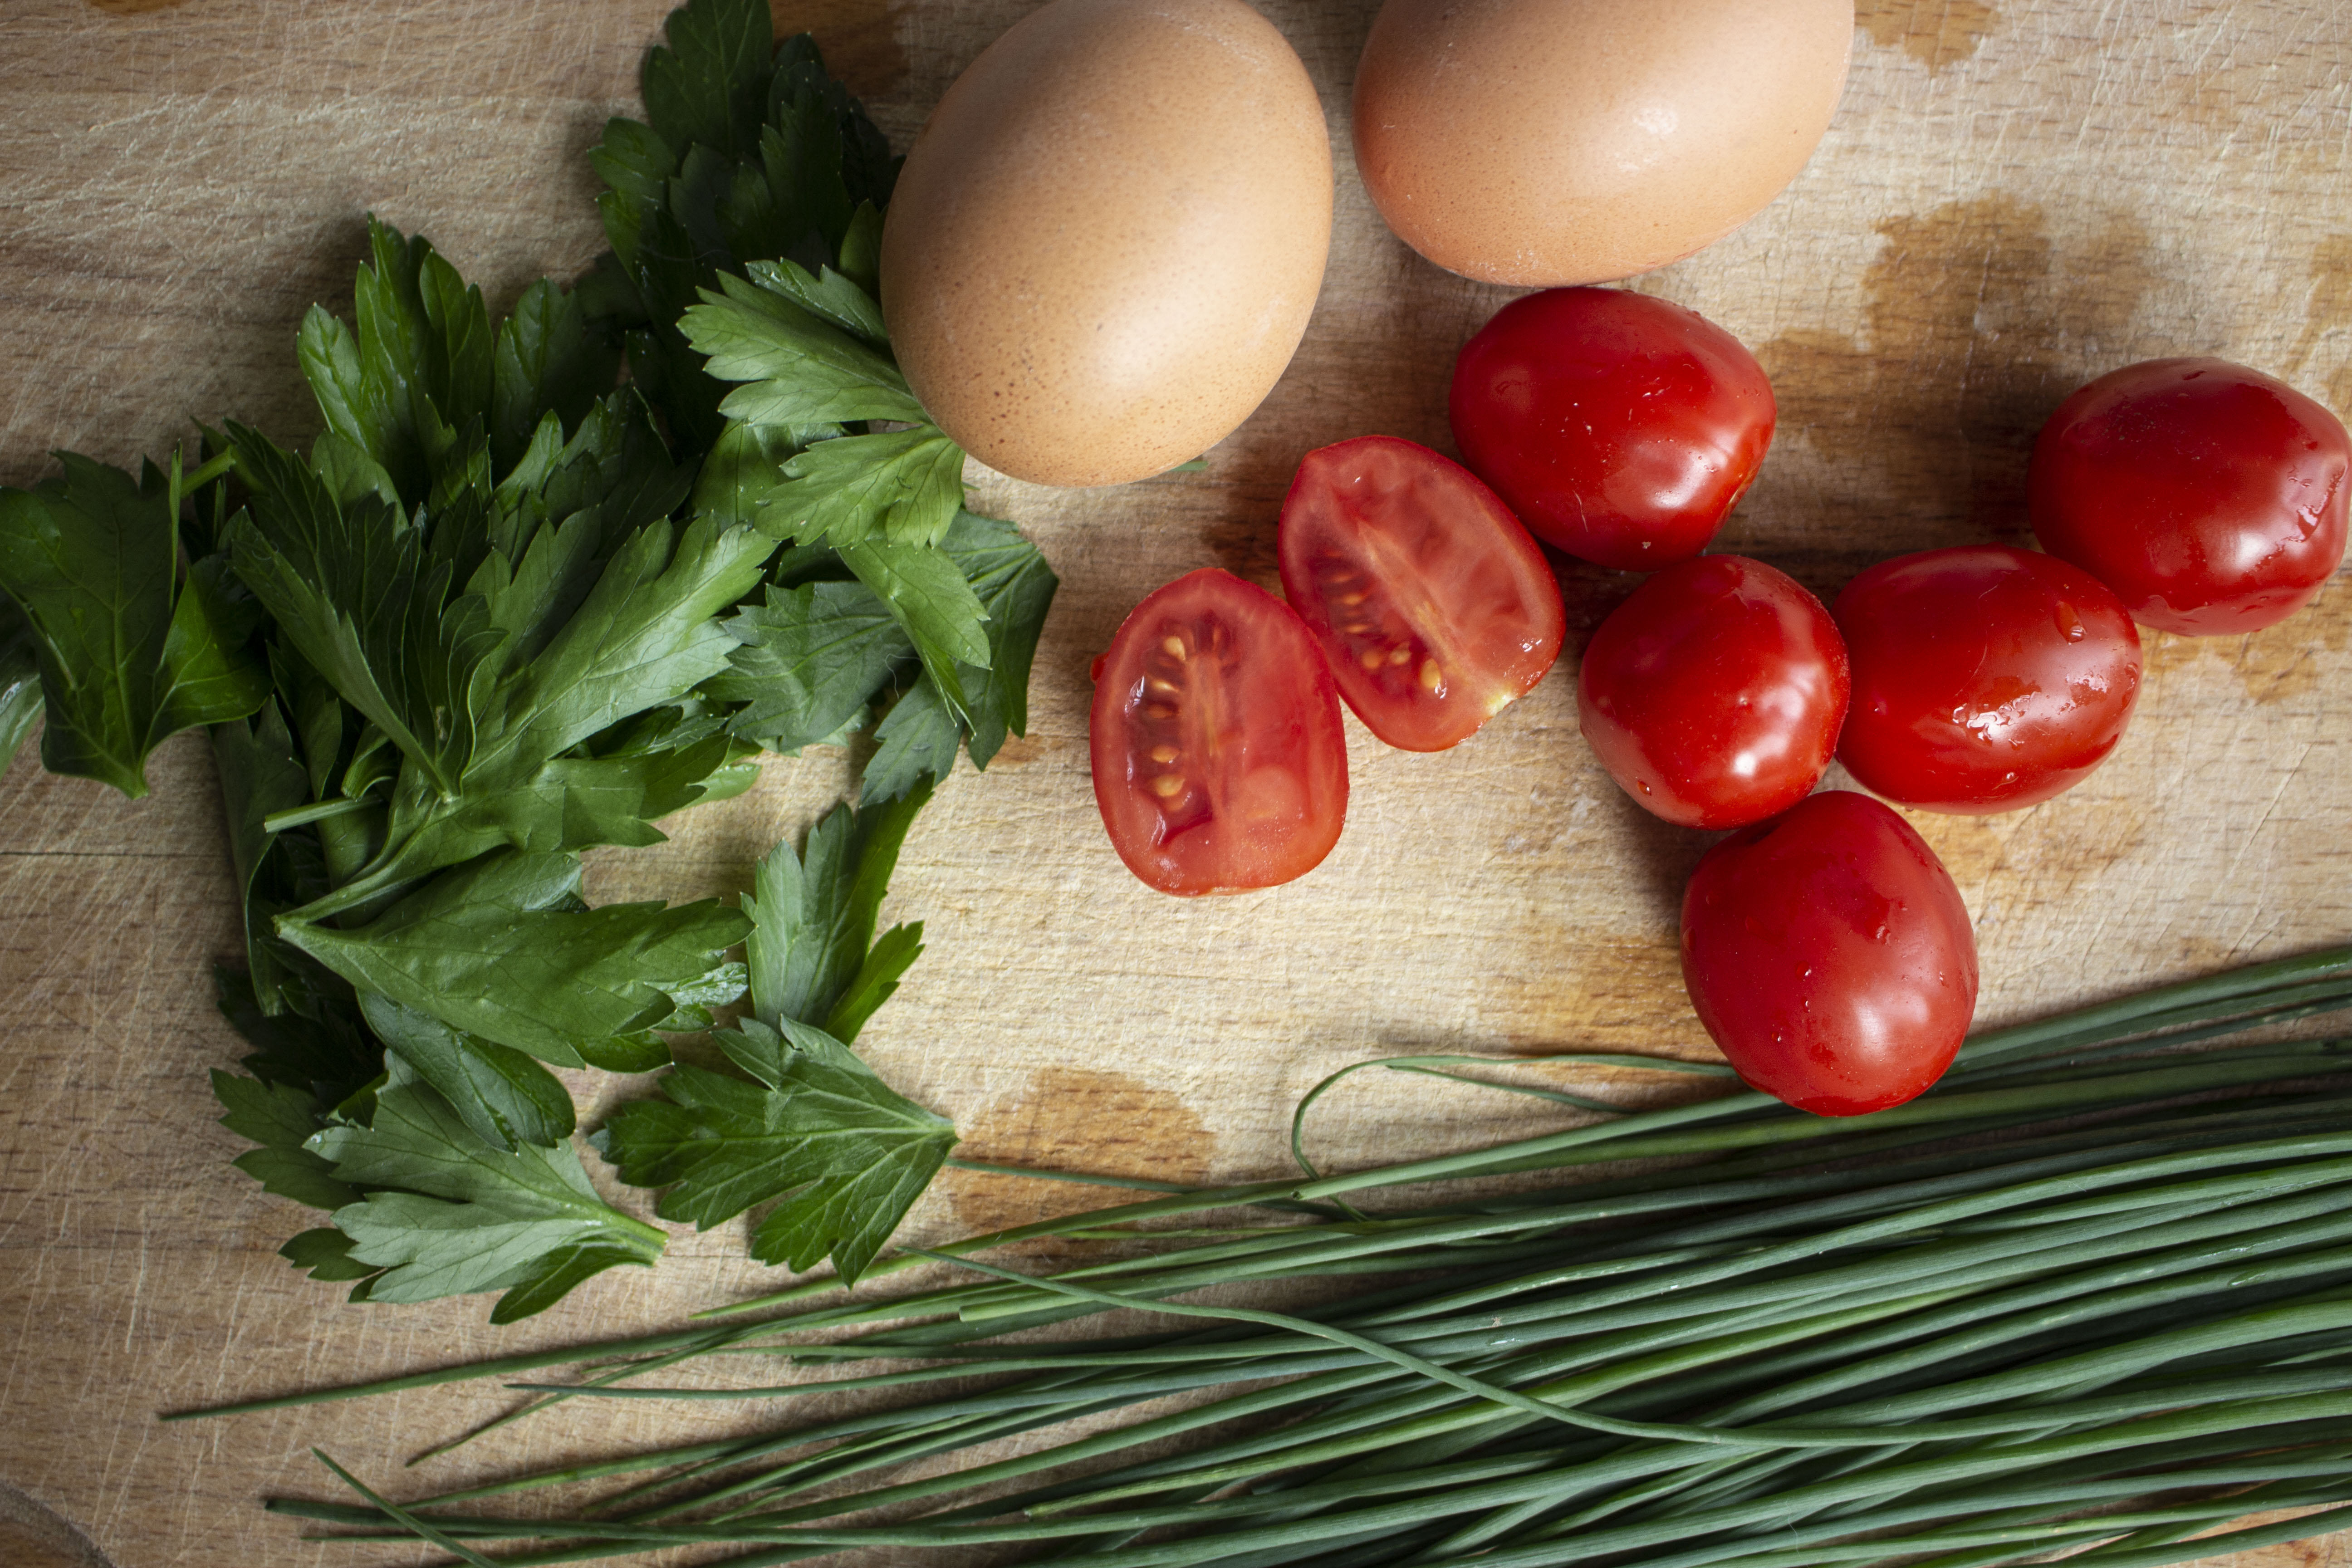 ingredients eggs, chives, parsley, cherry tomatoes